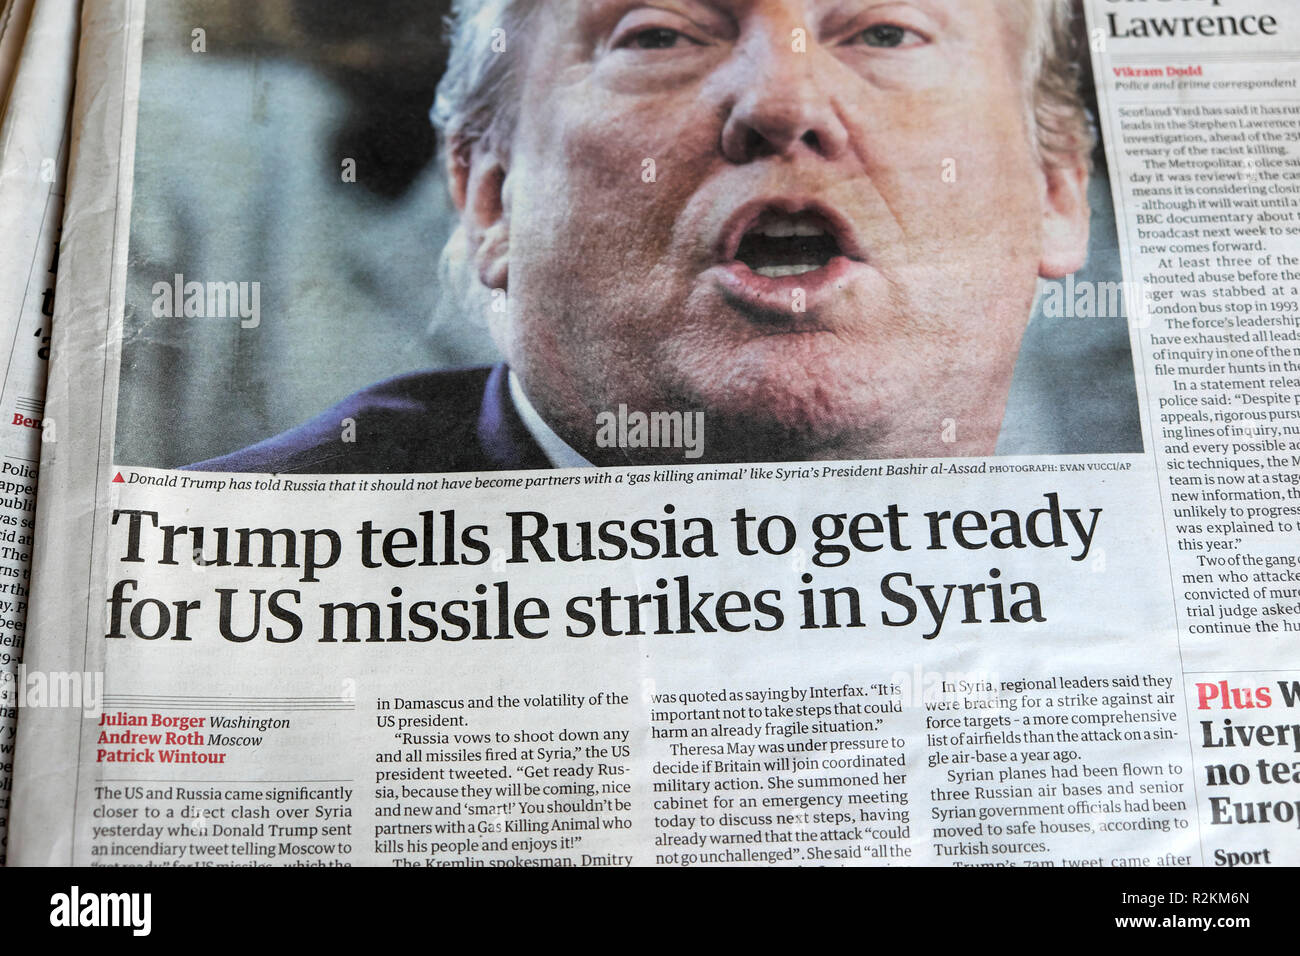 'Trump tells Russia to get ready for US missile strikes in Syria' Guardian newspaper article headline in London UK  12 April 2018 - Stock Image